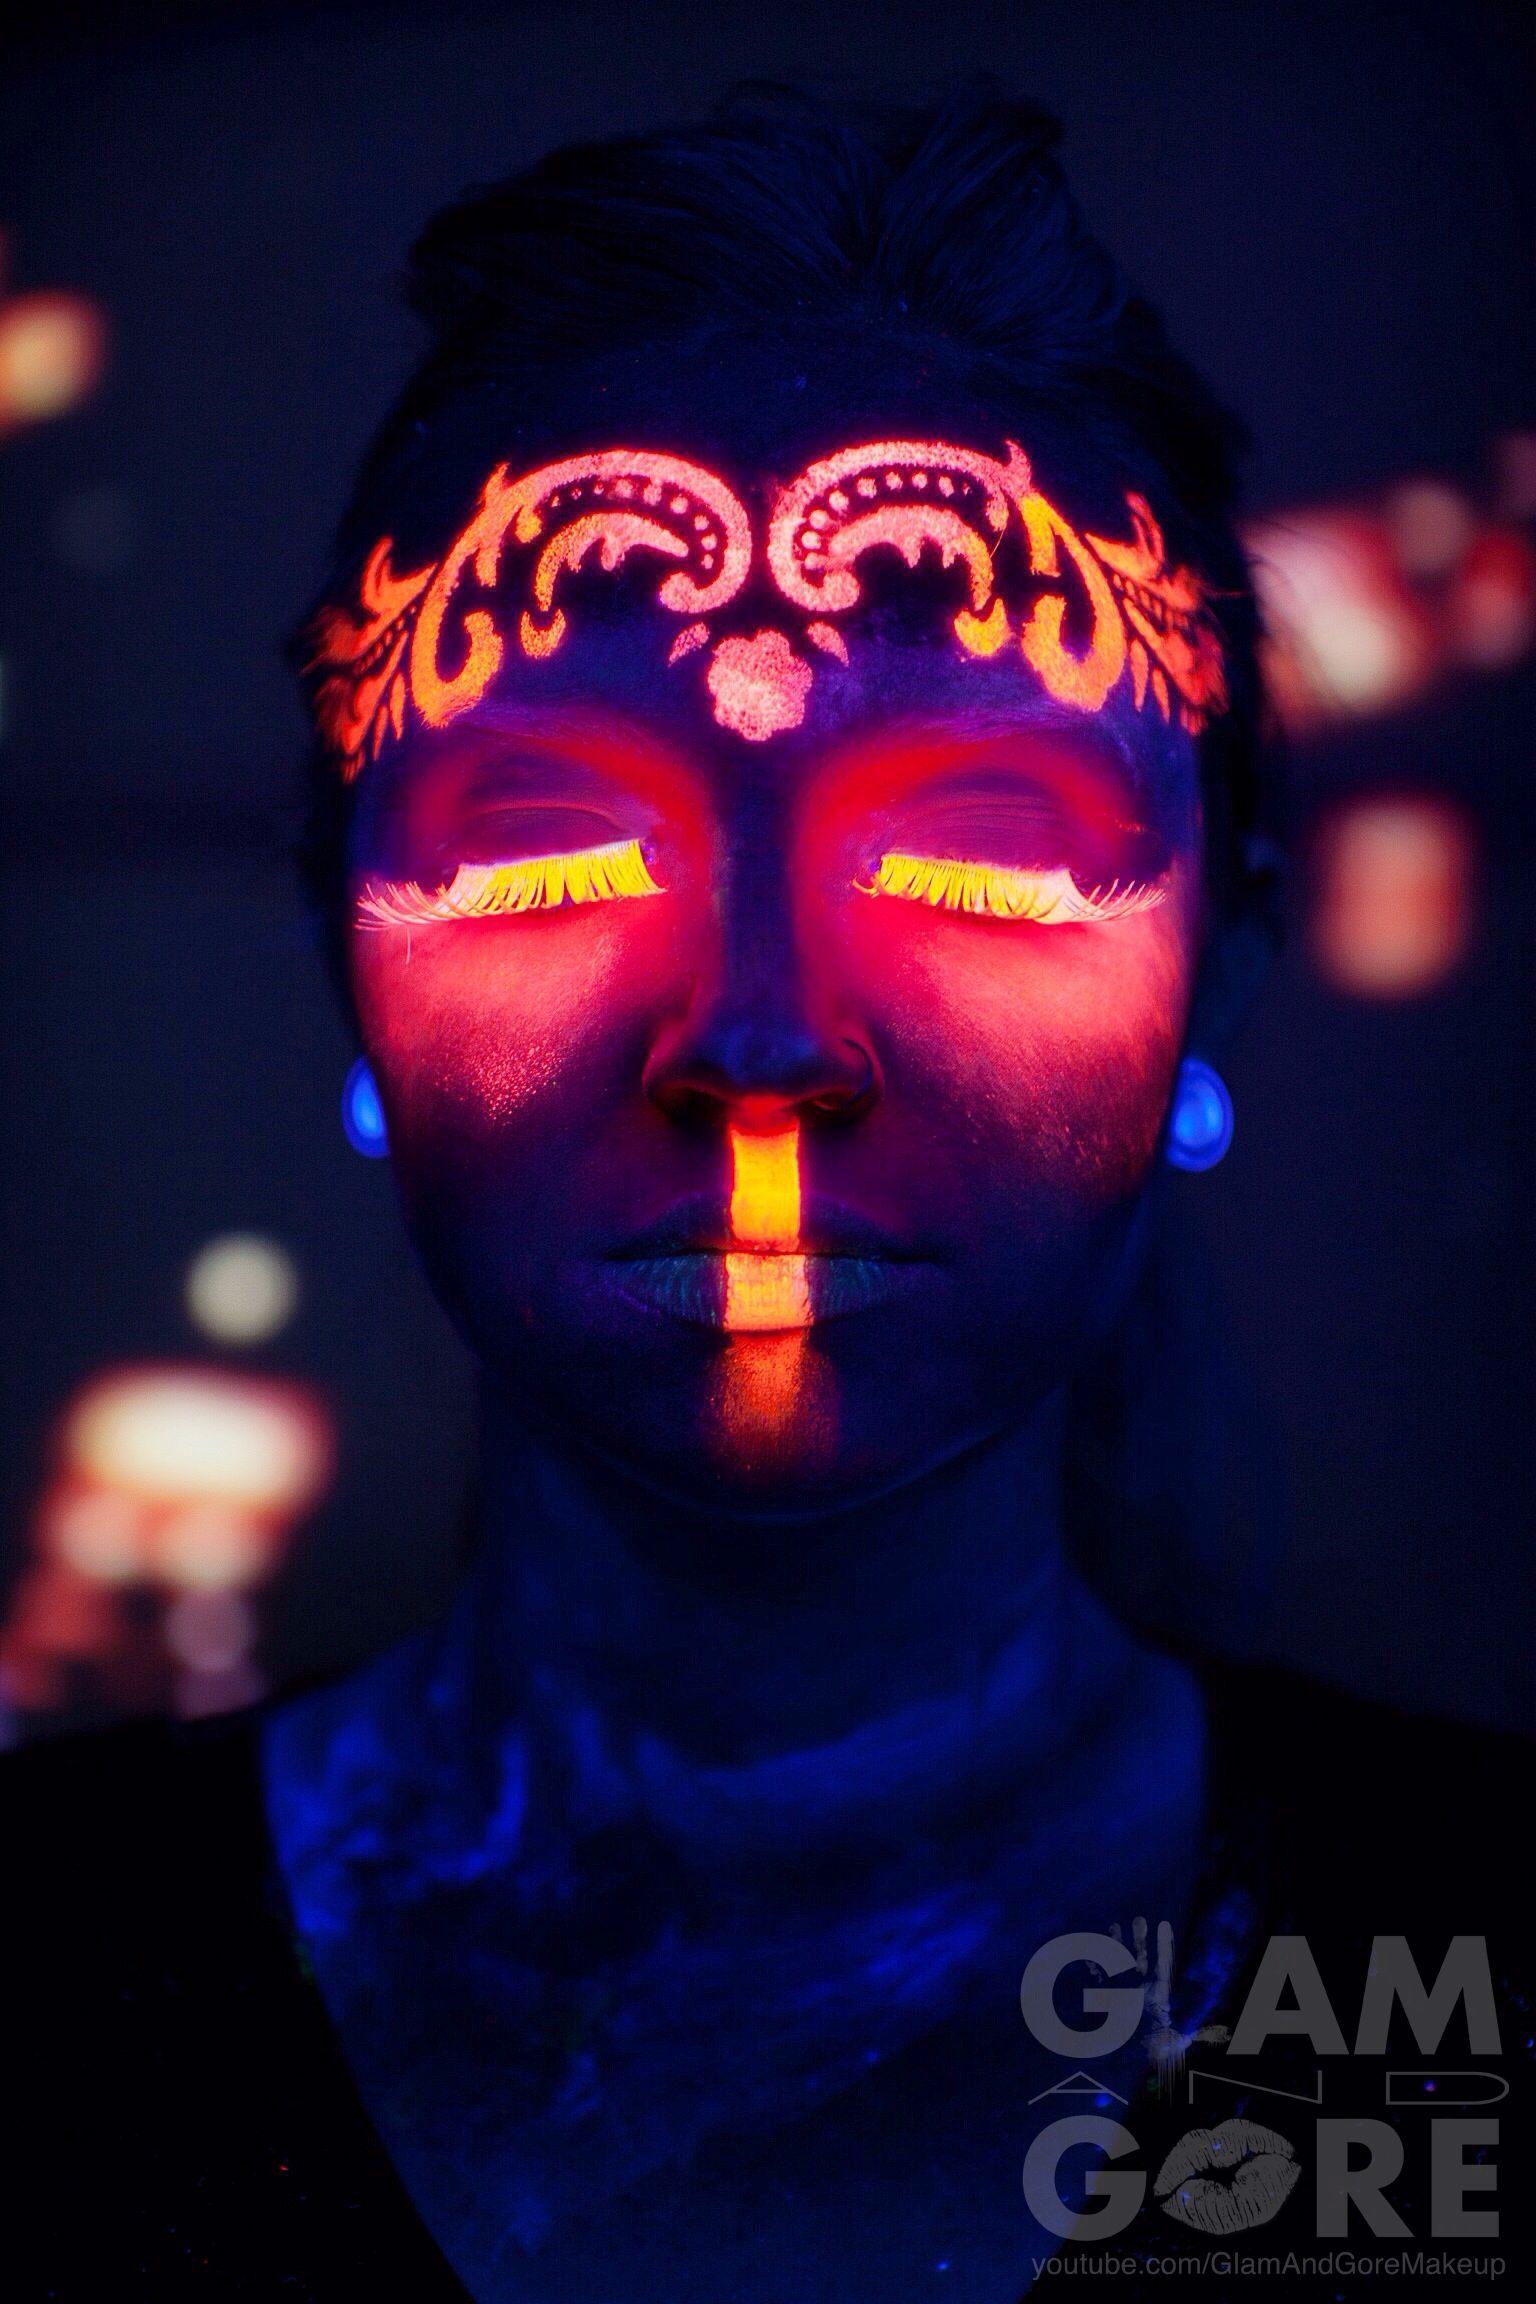 Glow in the dark / UV face paint For more makeup looks and